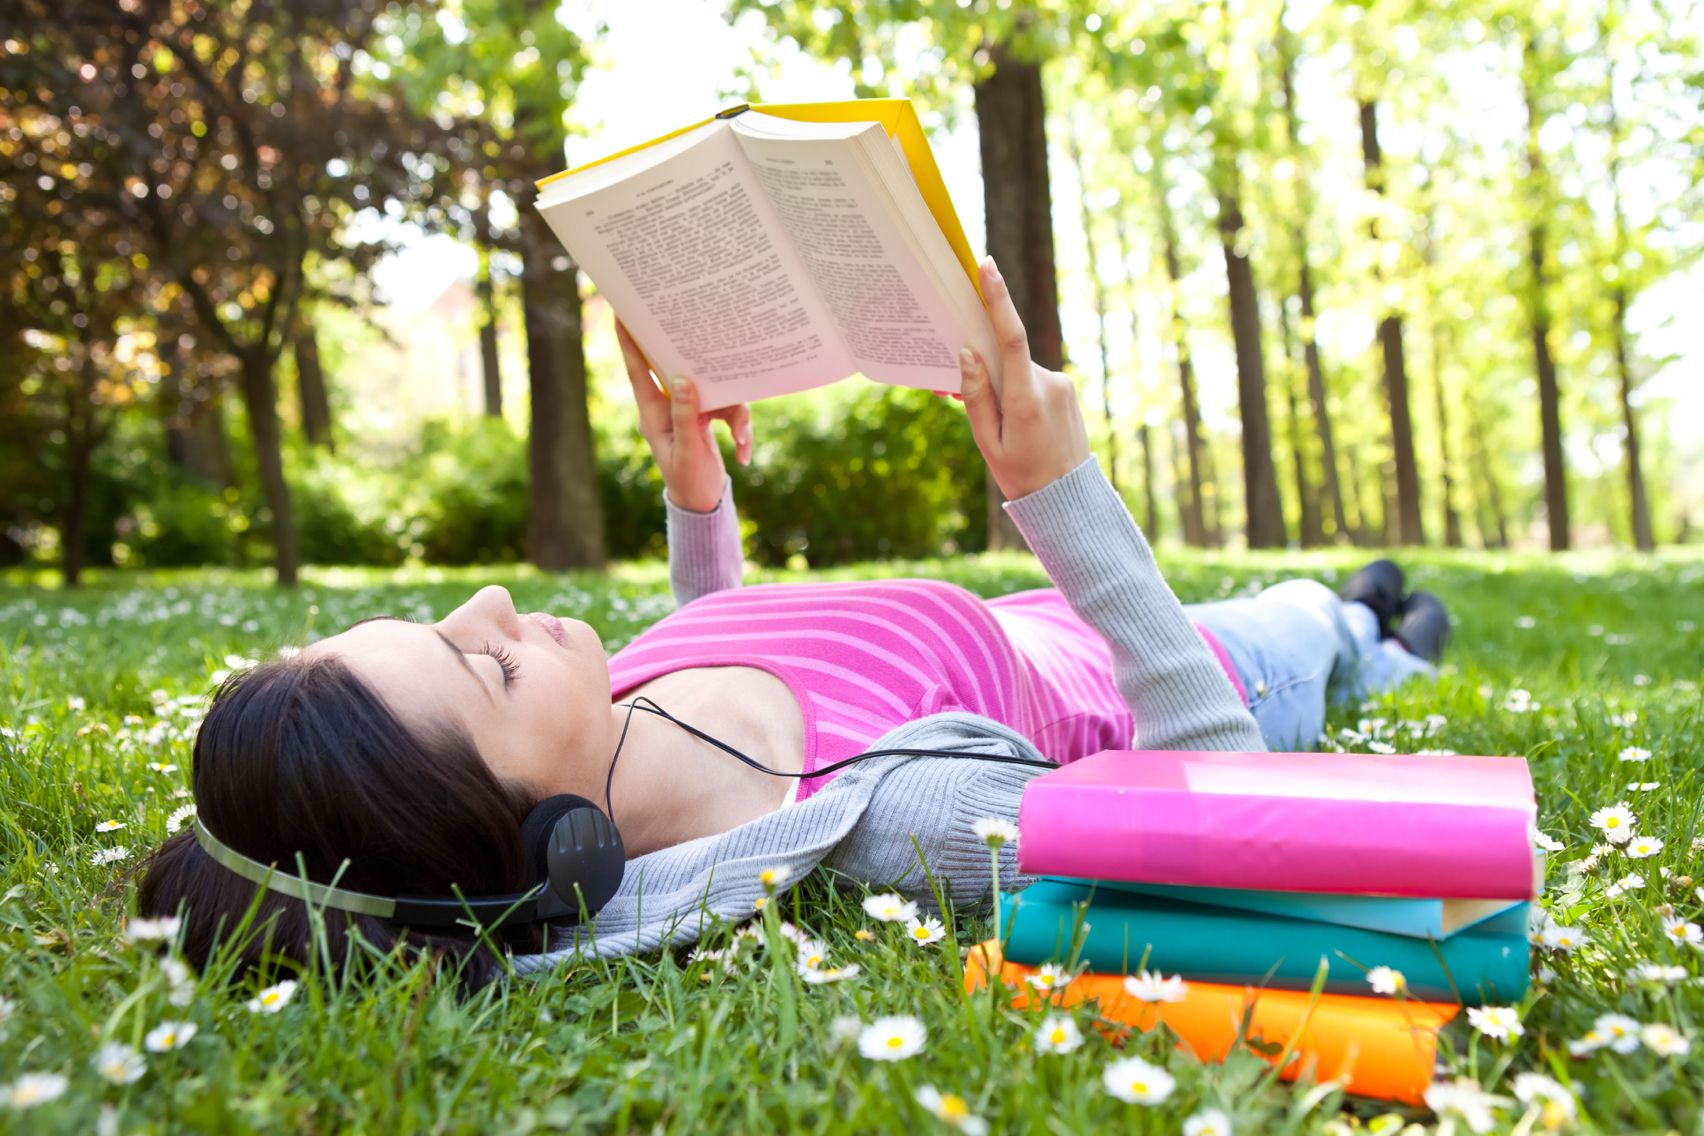 How High School Teachers, Parents Can Encourage Teens to Read for Fun  https://t.co/eewKGGOR7k via @usnews https://t.co/KdN8GHiNtl